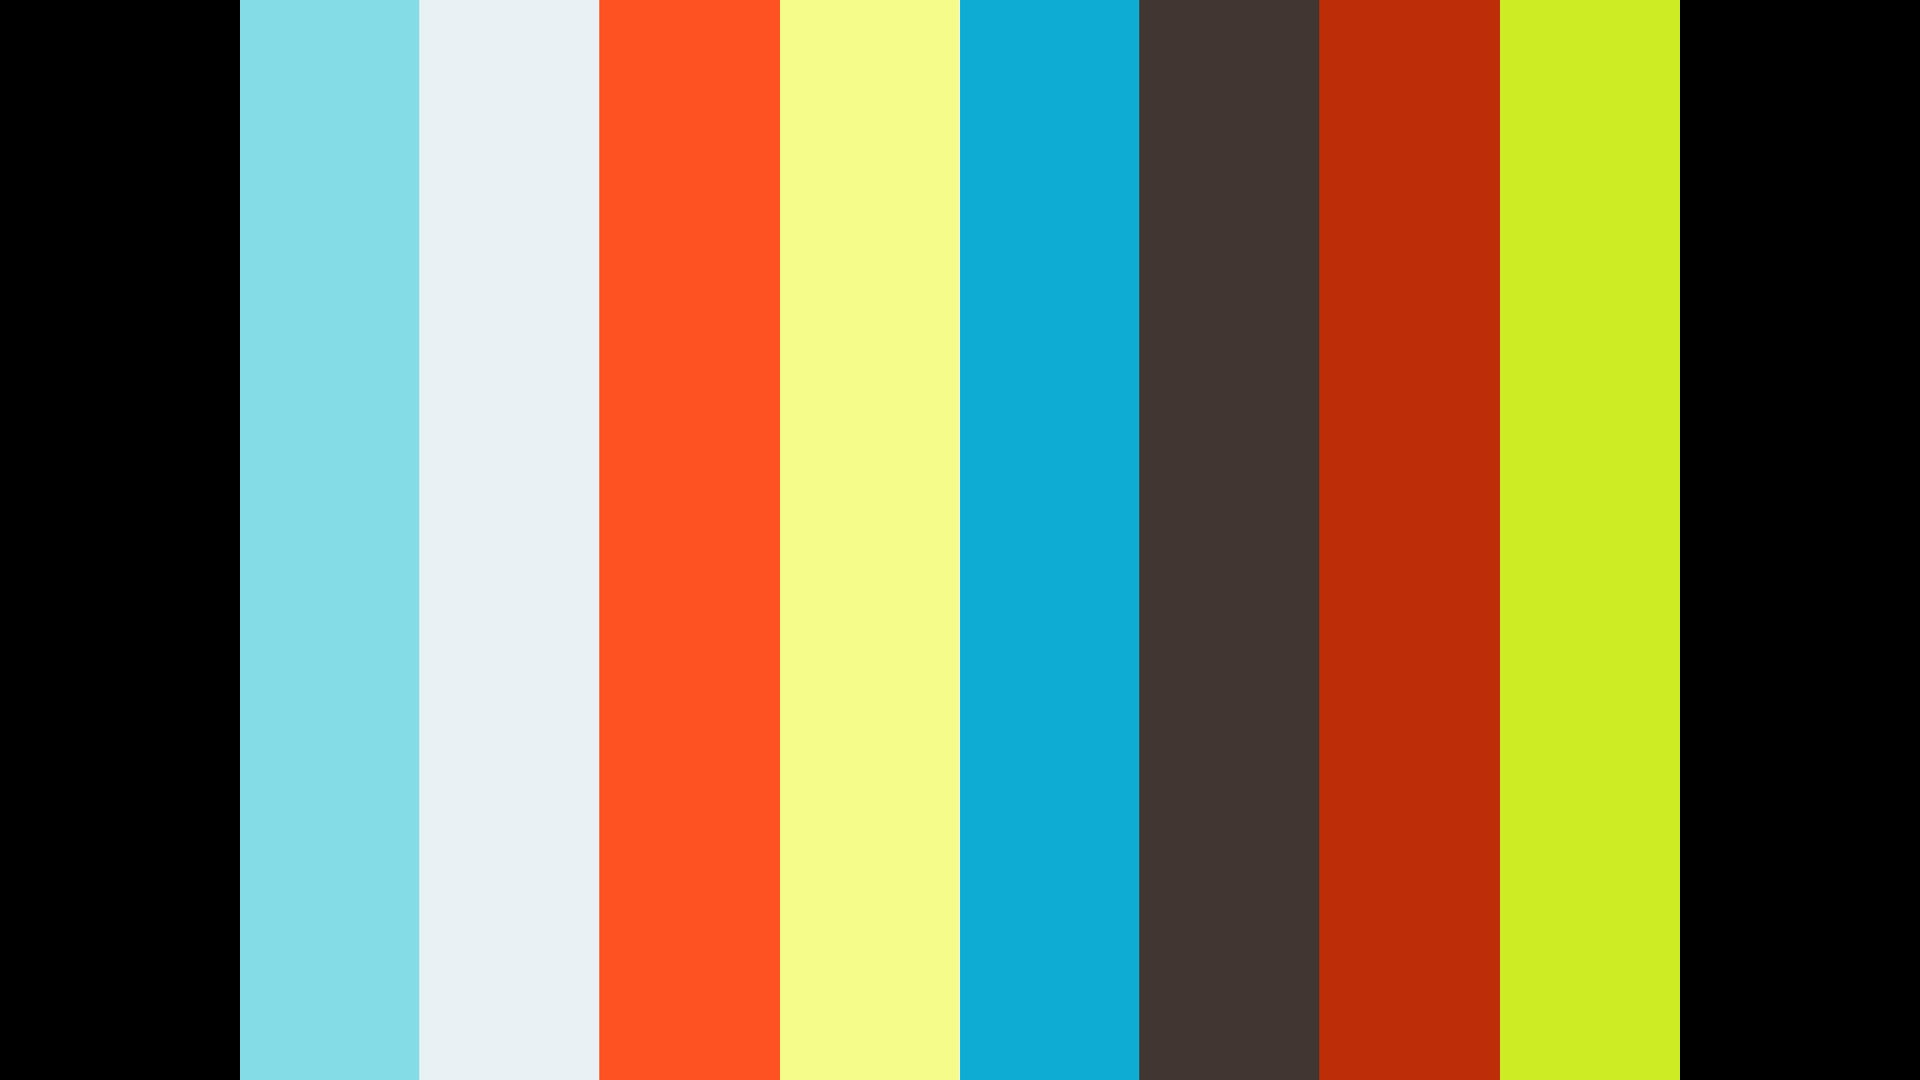 Assessment - Ankle Dorsiflexion Test